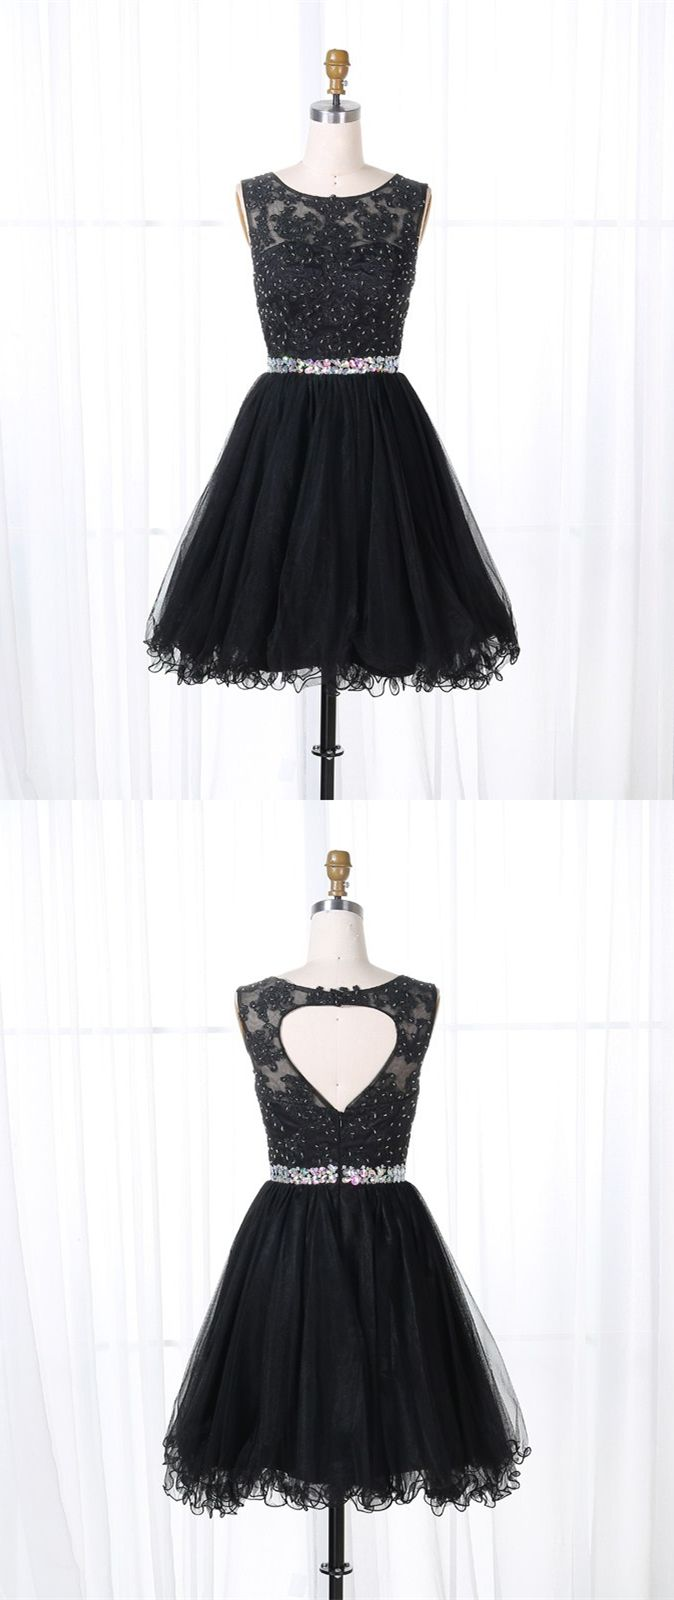 Aline round neck open back black tulle short homecoming dress with